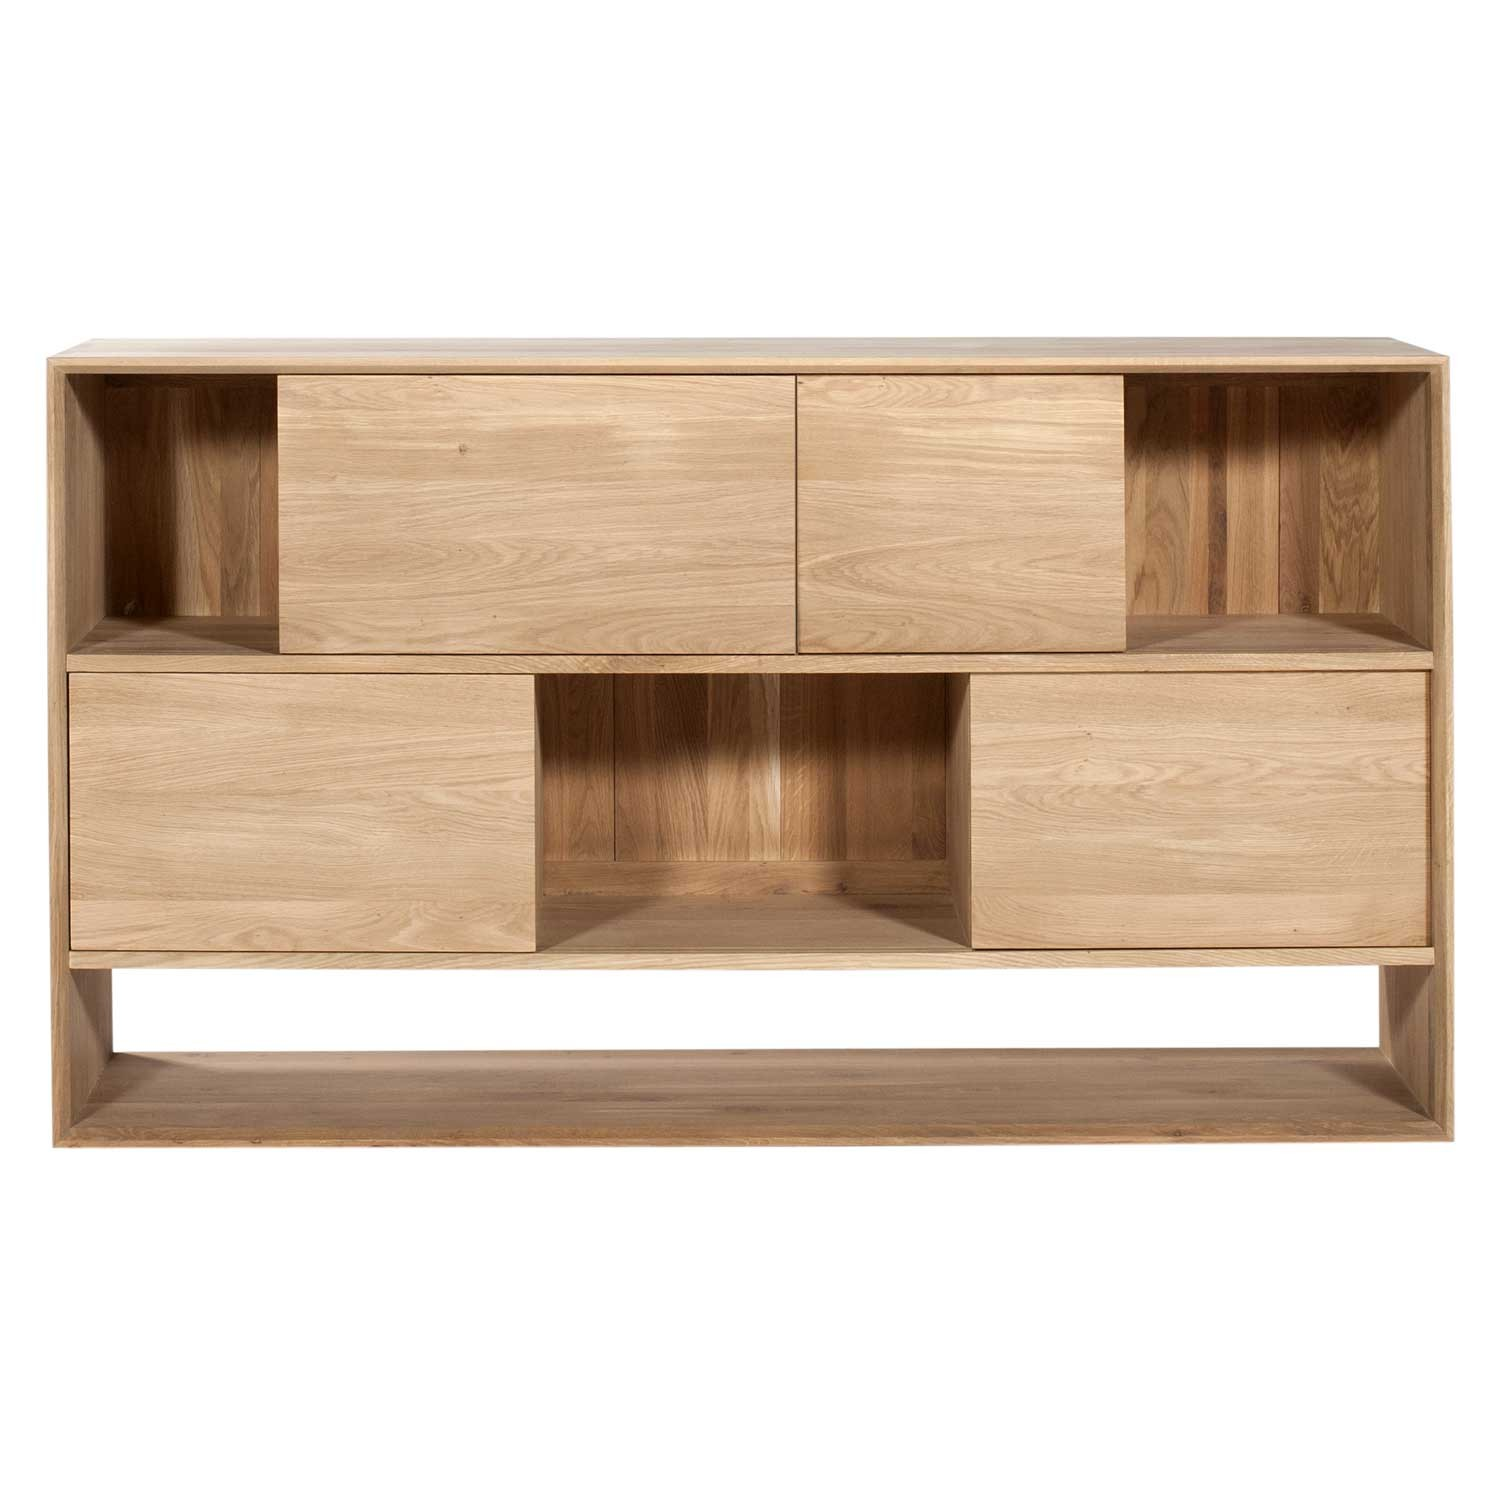 rusta hylla ek ~ ethnicraft oak nordic low rack – 4 sliding doors